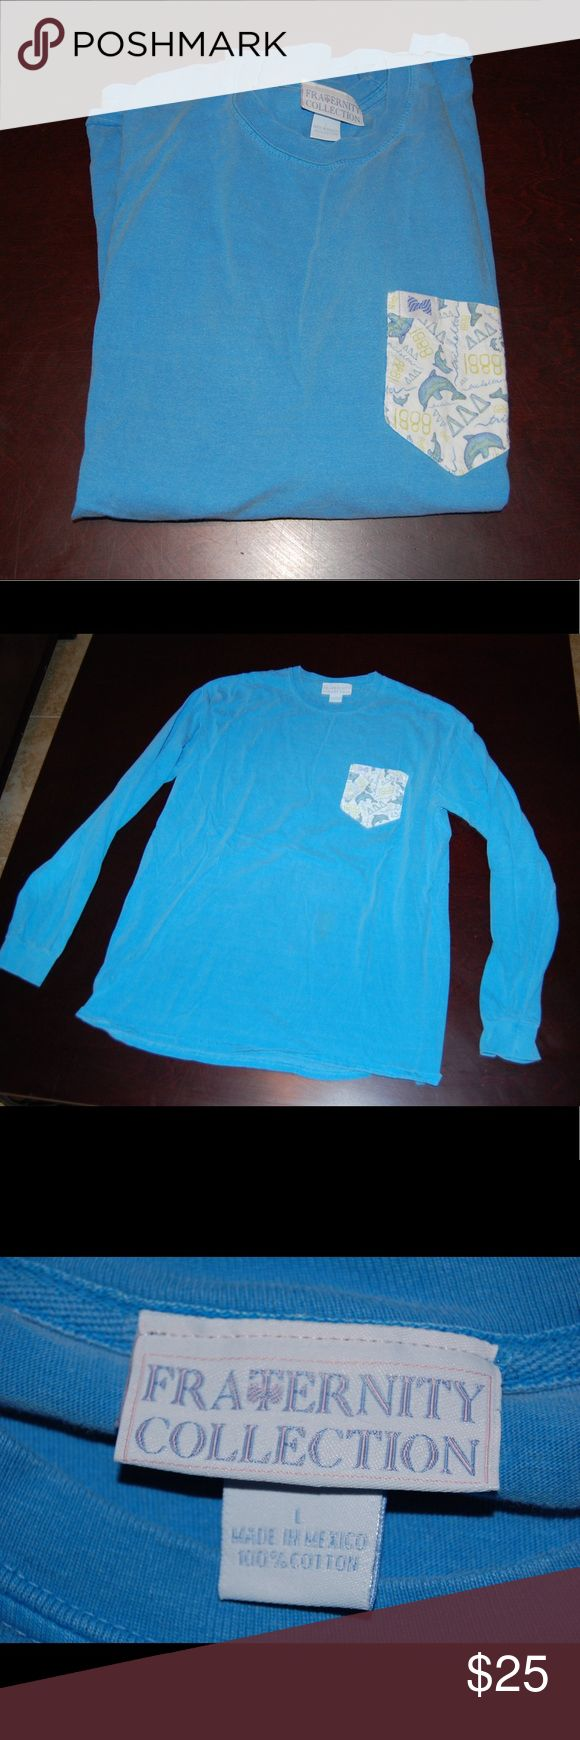 Long sleeve tri delta t shirt Perfect condition worn once or twice fraternity collection Tops Tees - Long Sleeve